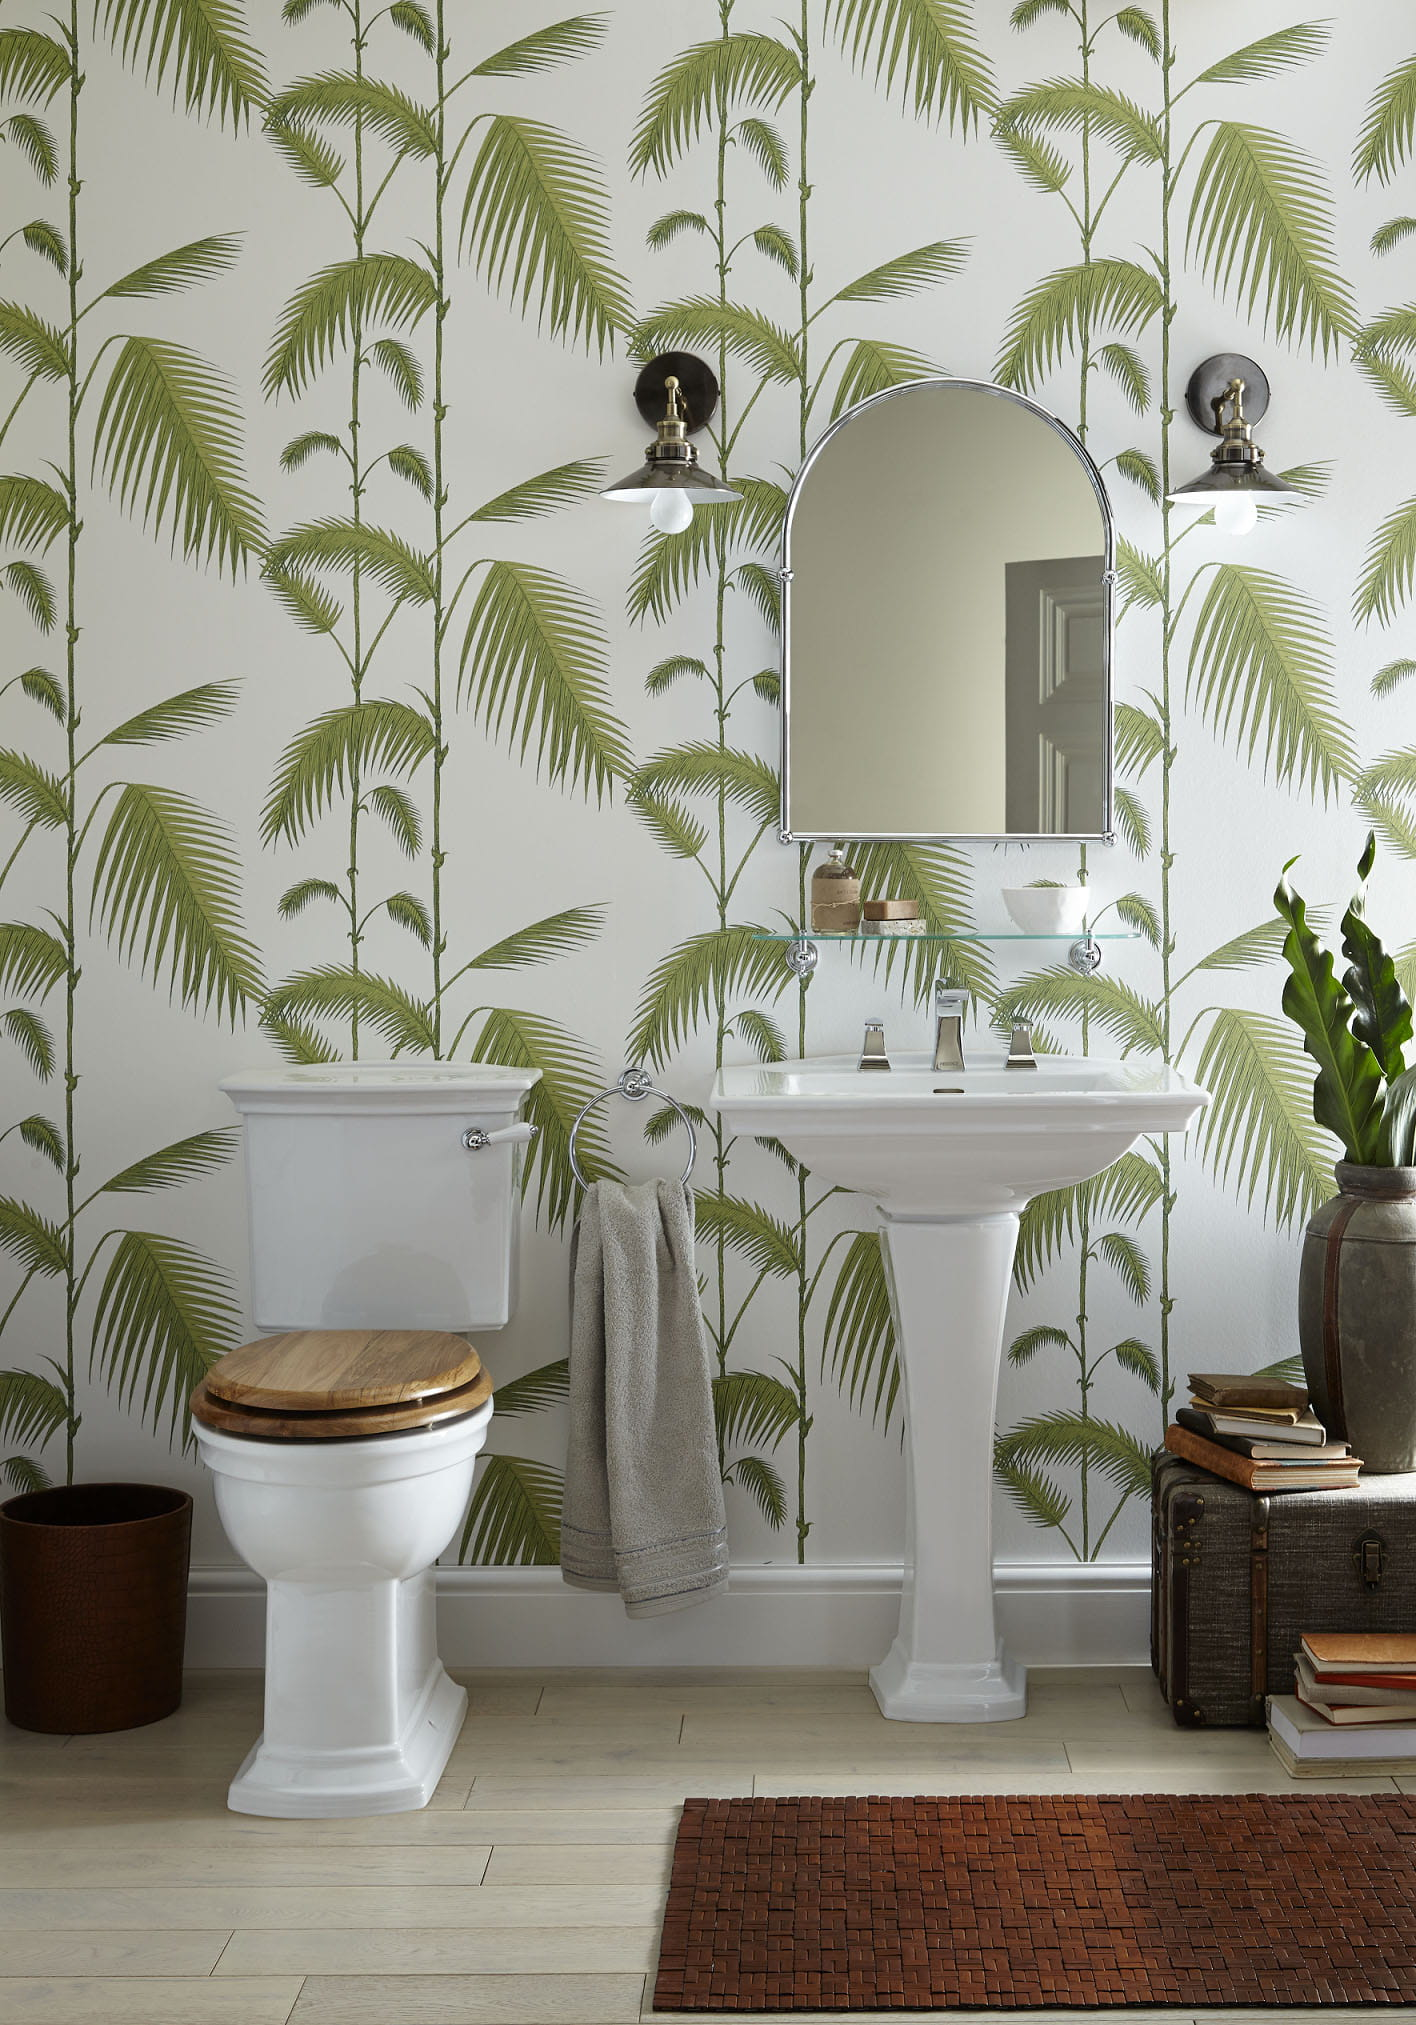 Blenheim suite with Palm Tree Wallpaper